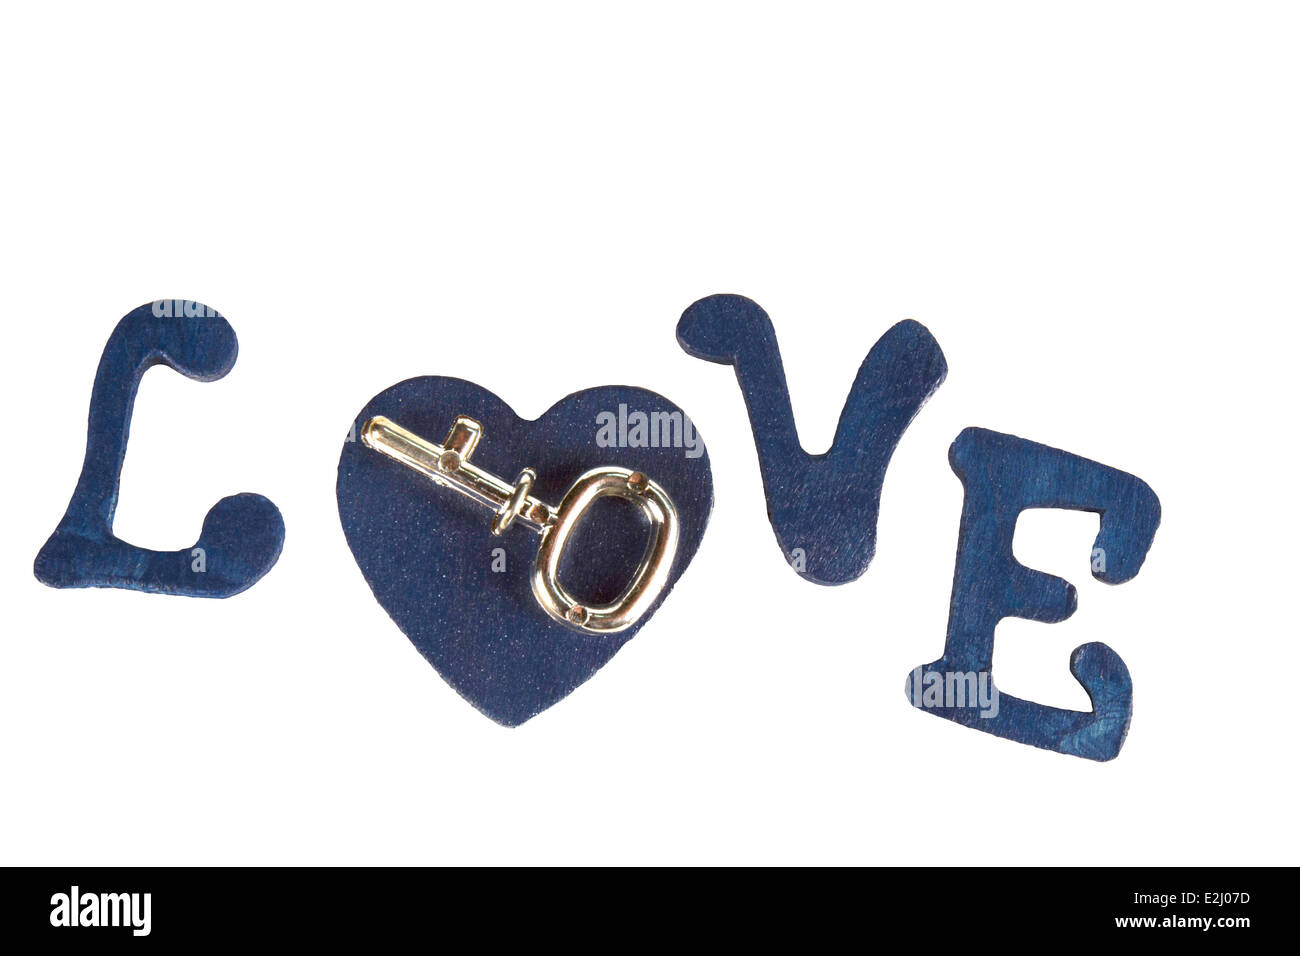 Key on a heart in the word LOVE spelled in wooden letters - Stock Image